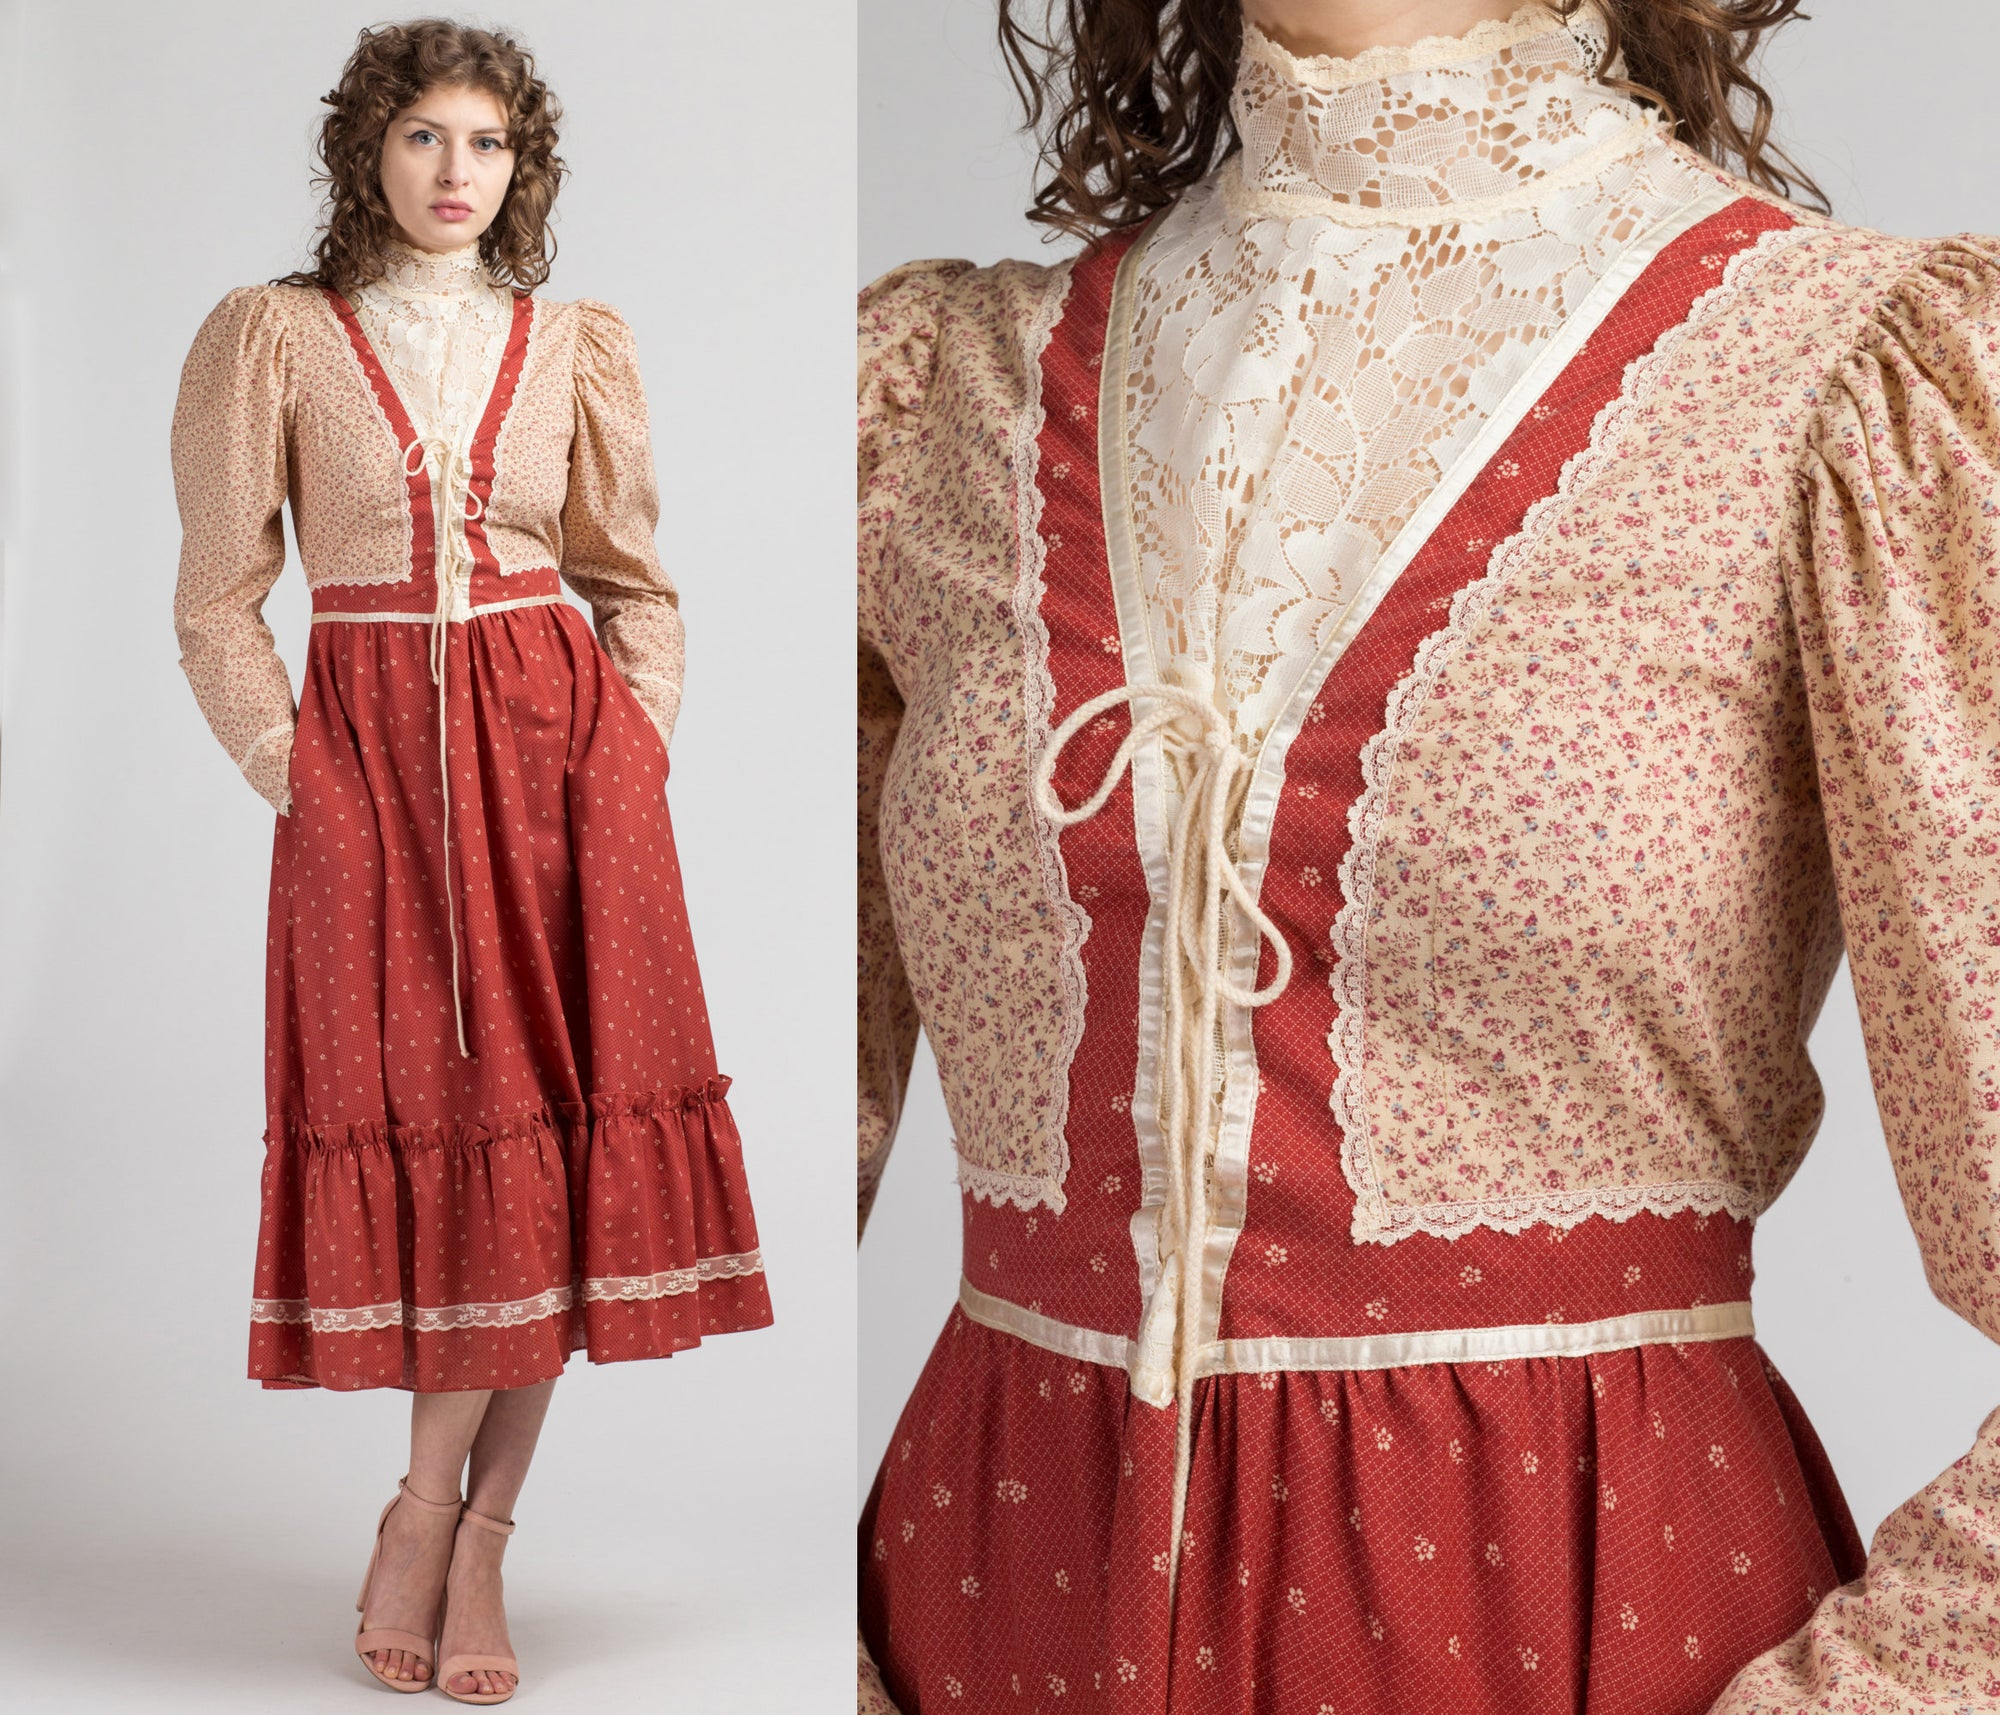 70s Does 1890s Gunne Sax Prairie Dress - Medium | Vintage Red Calico Floral High Lace Neck Boho Pocket Midi